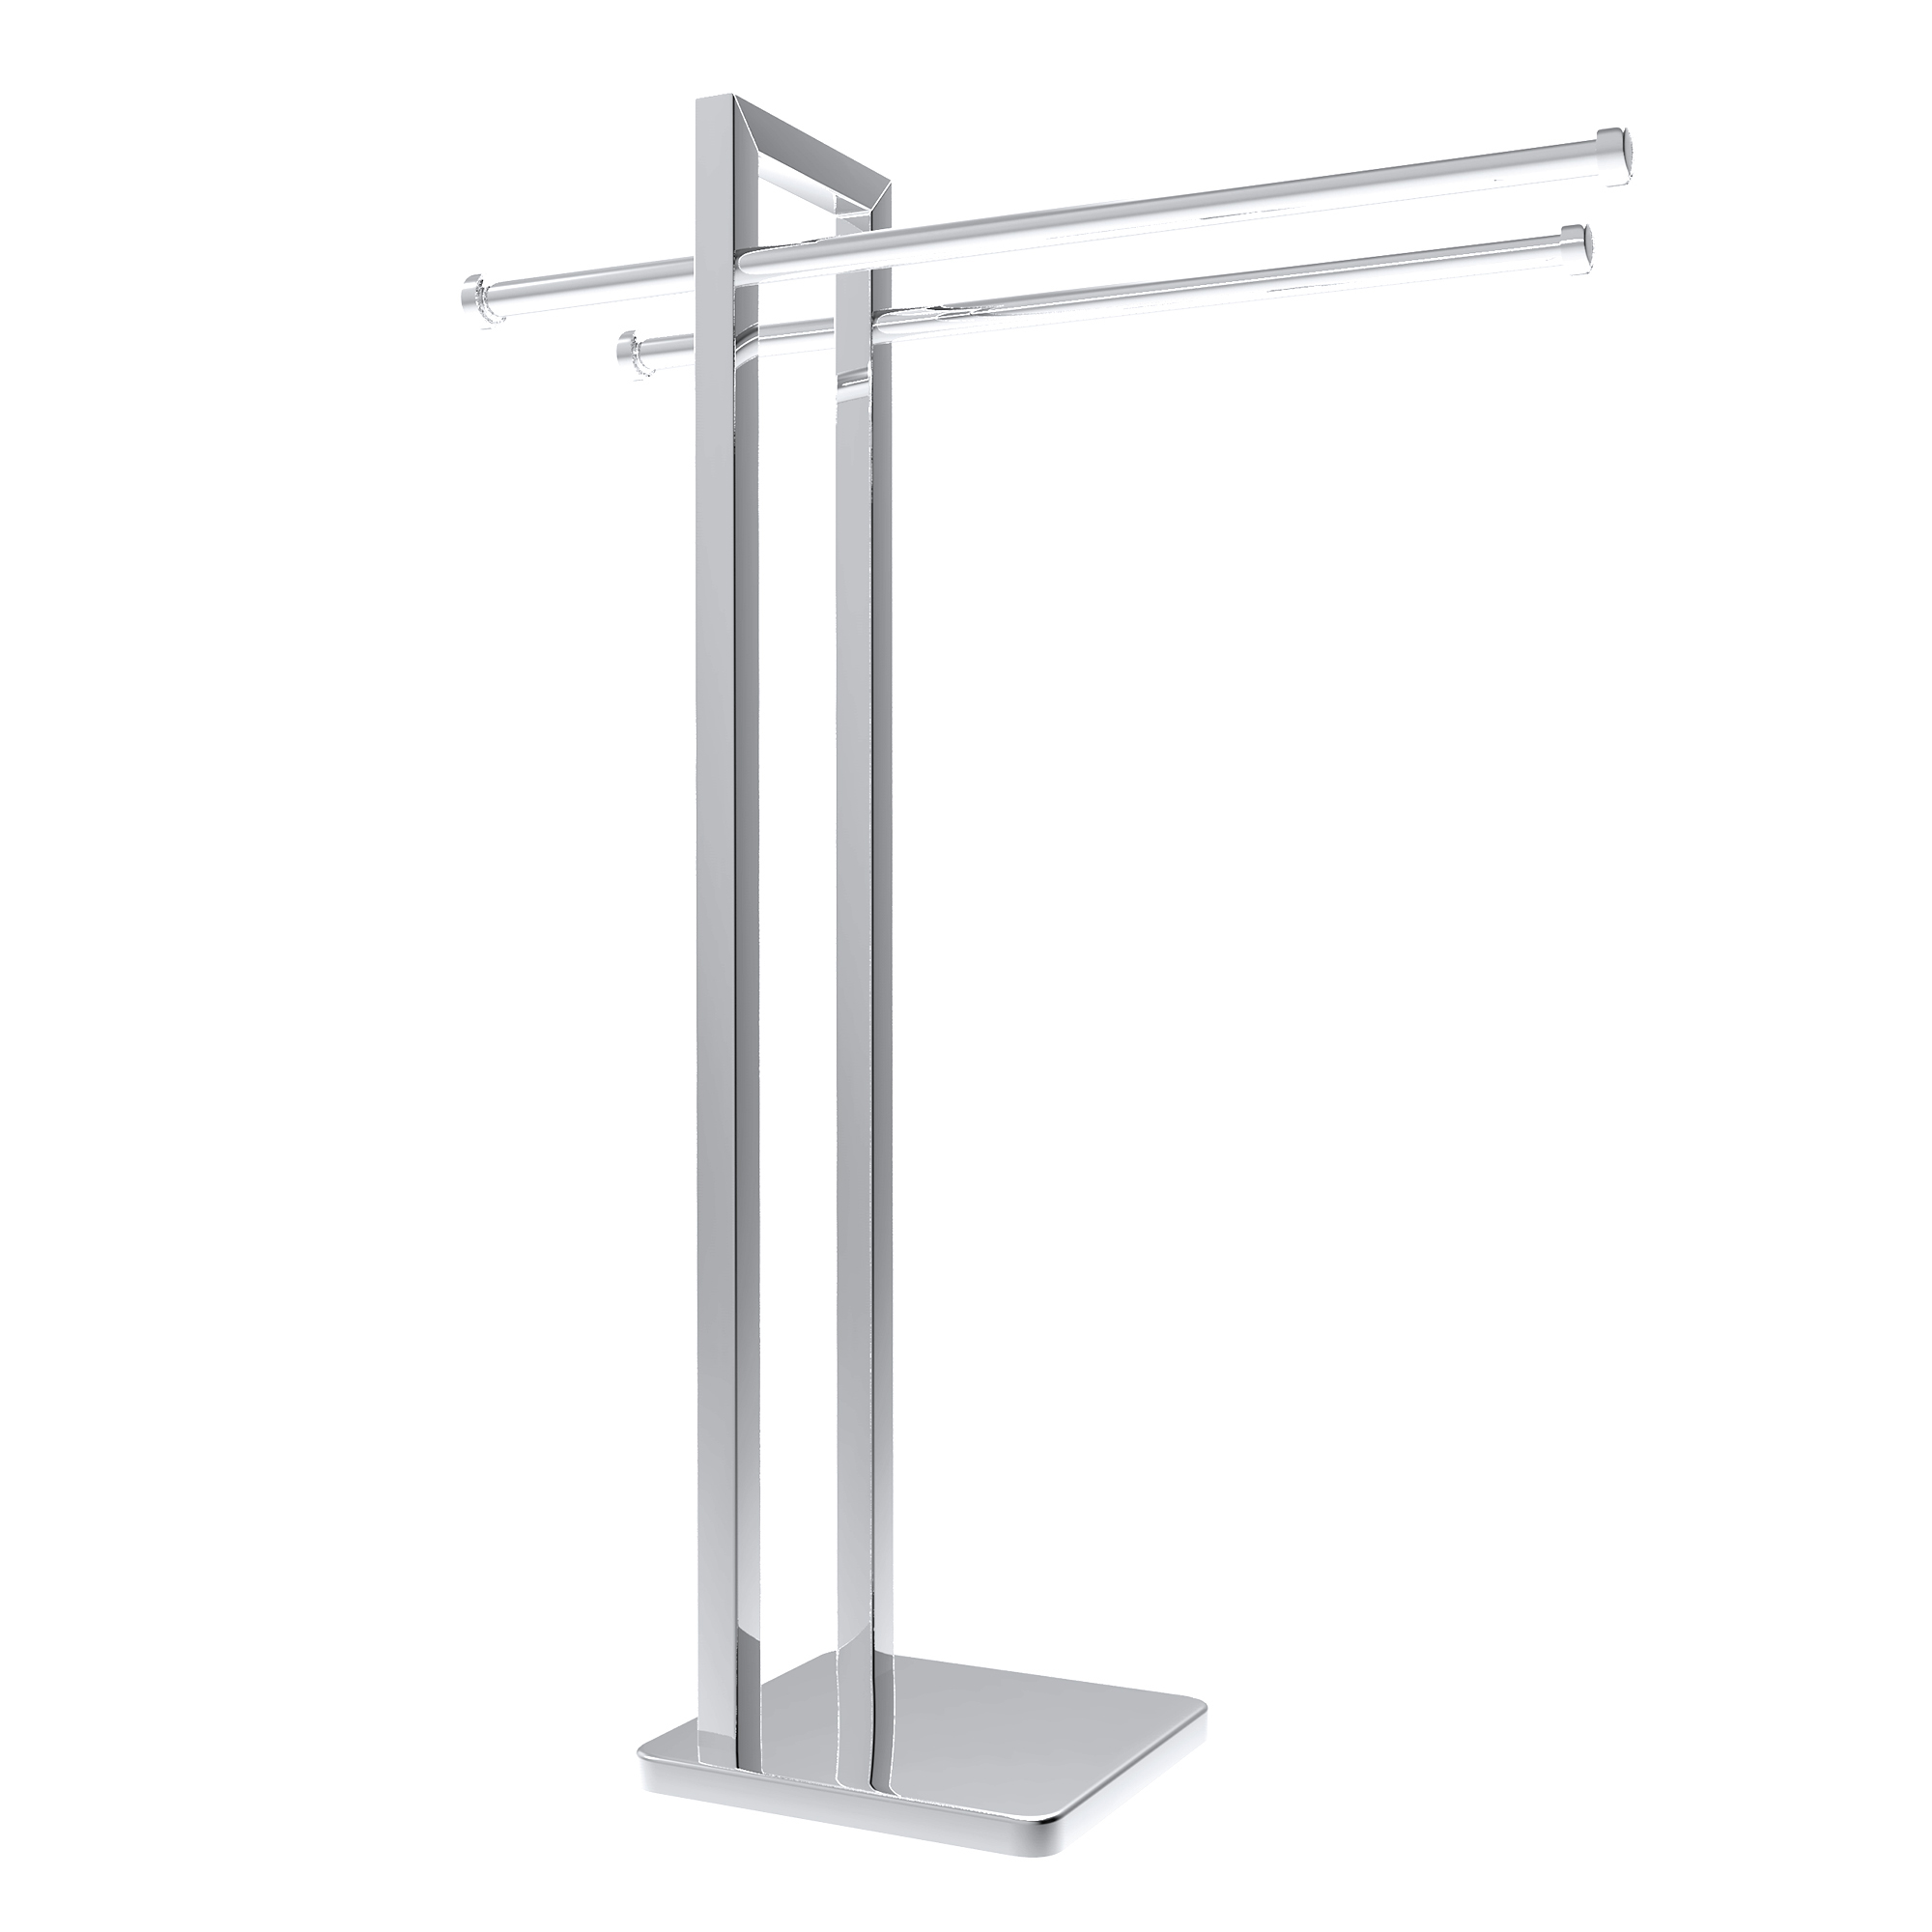 Exceptionnel Freestanding Towel Rack   Stainless Steel Holder Stand For Towels With  Double Hanging Bar For Bathroom Organization By Lavish Home (Chrome)